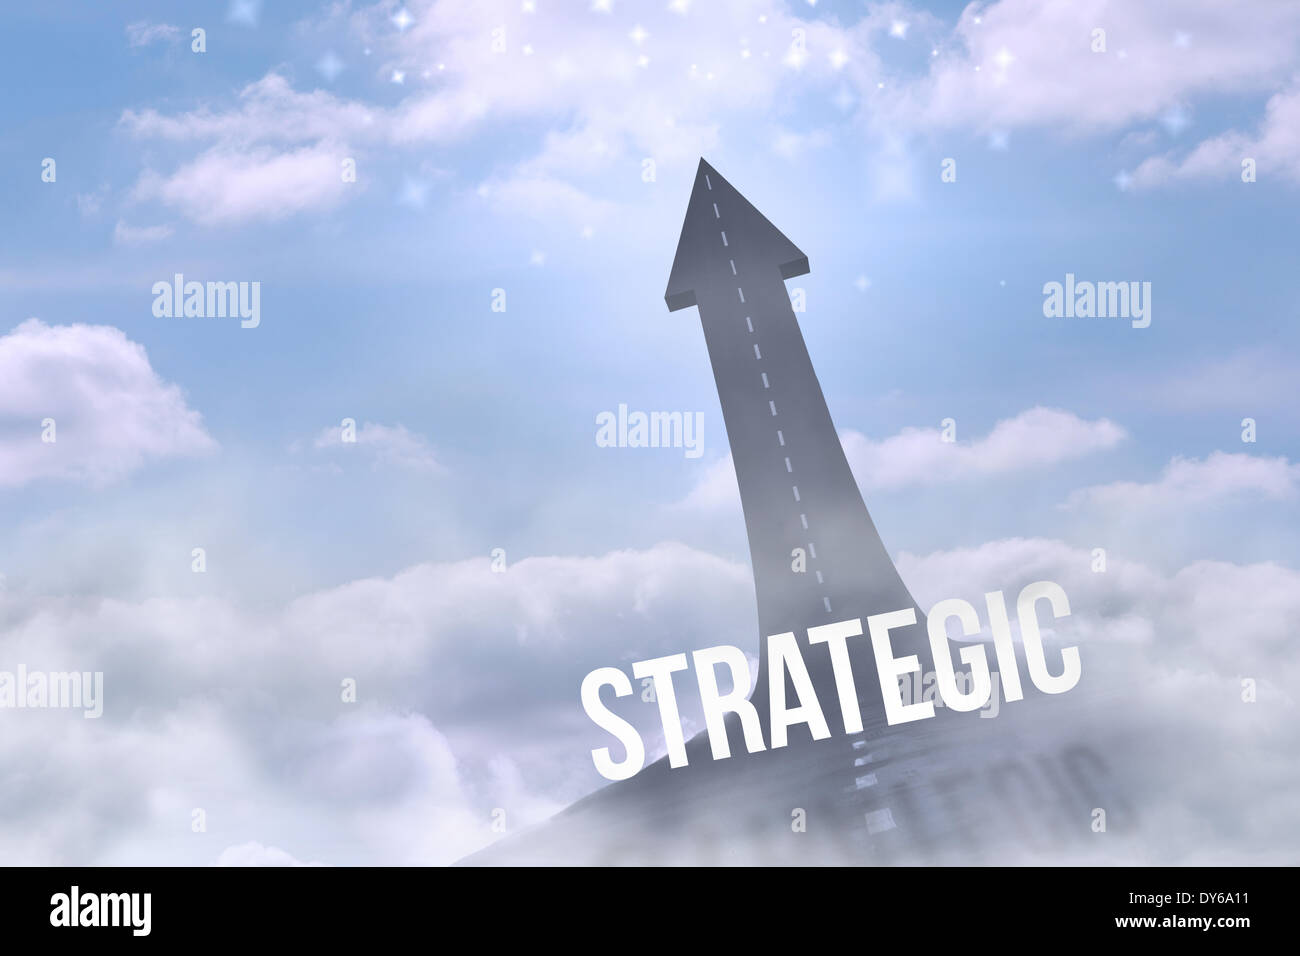 Strategic against road turning into arrow - Stock Image